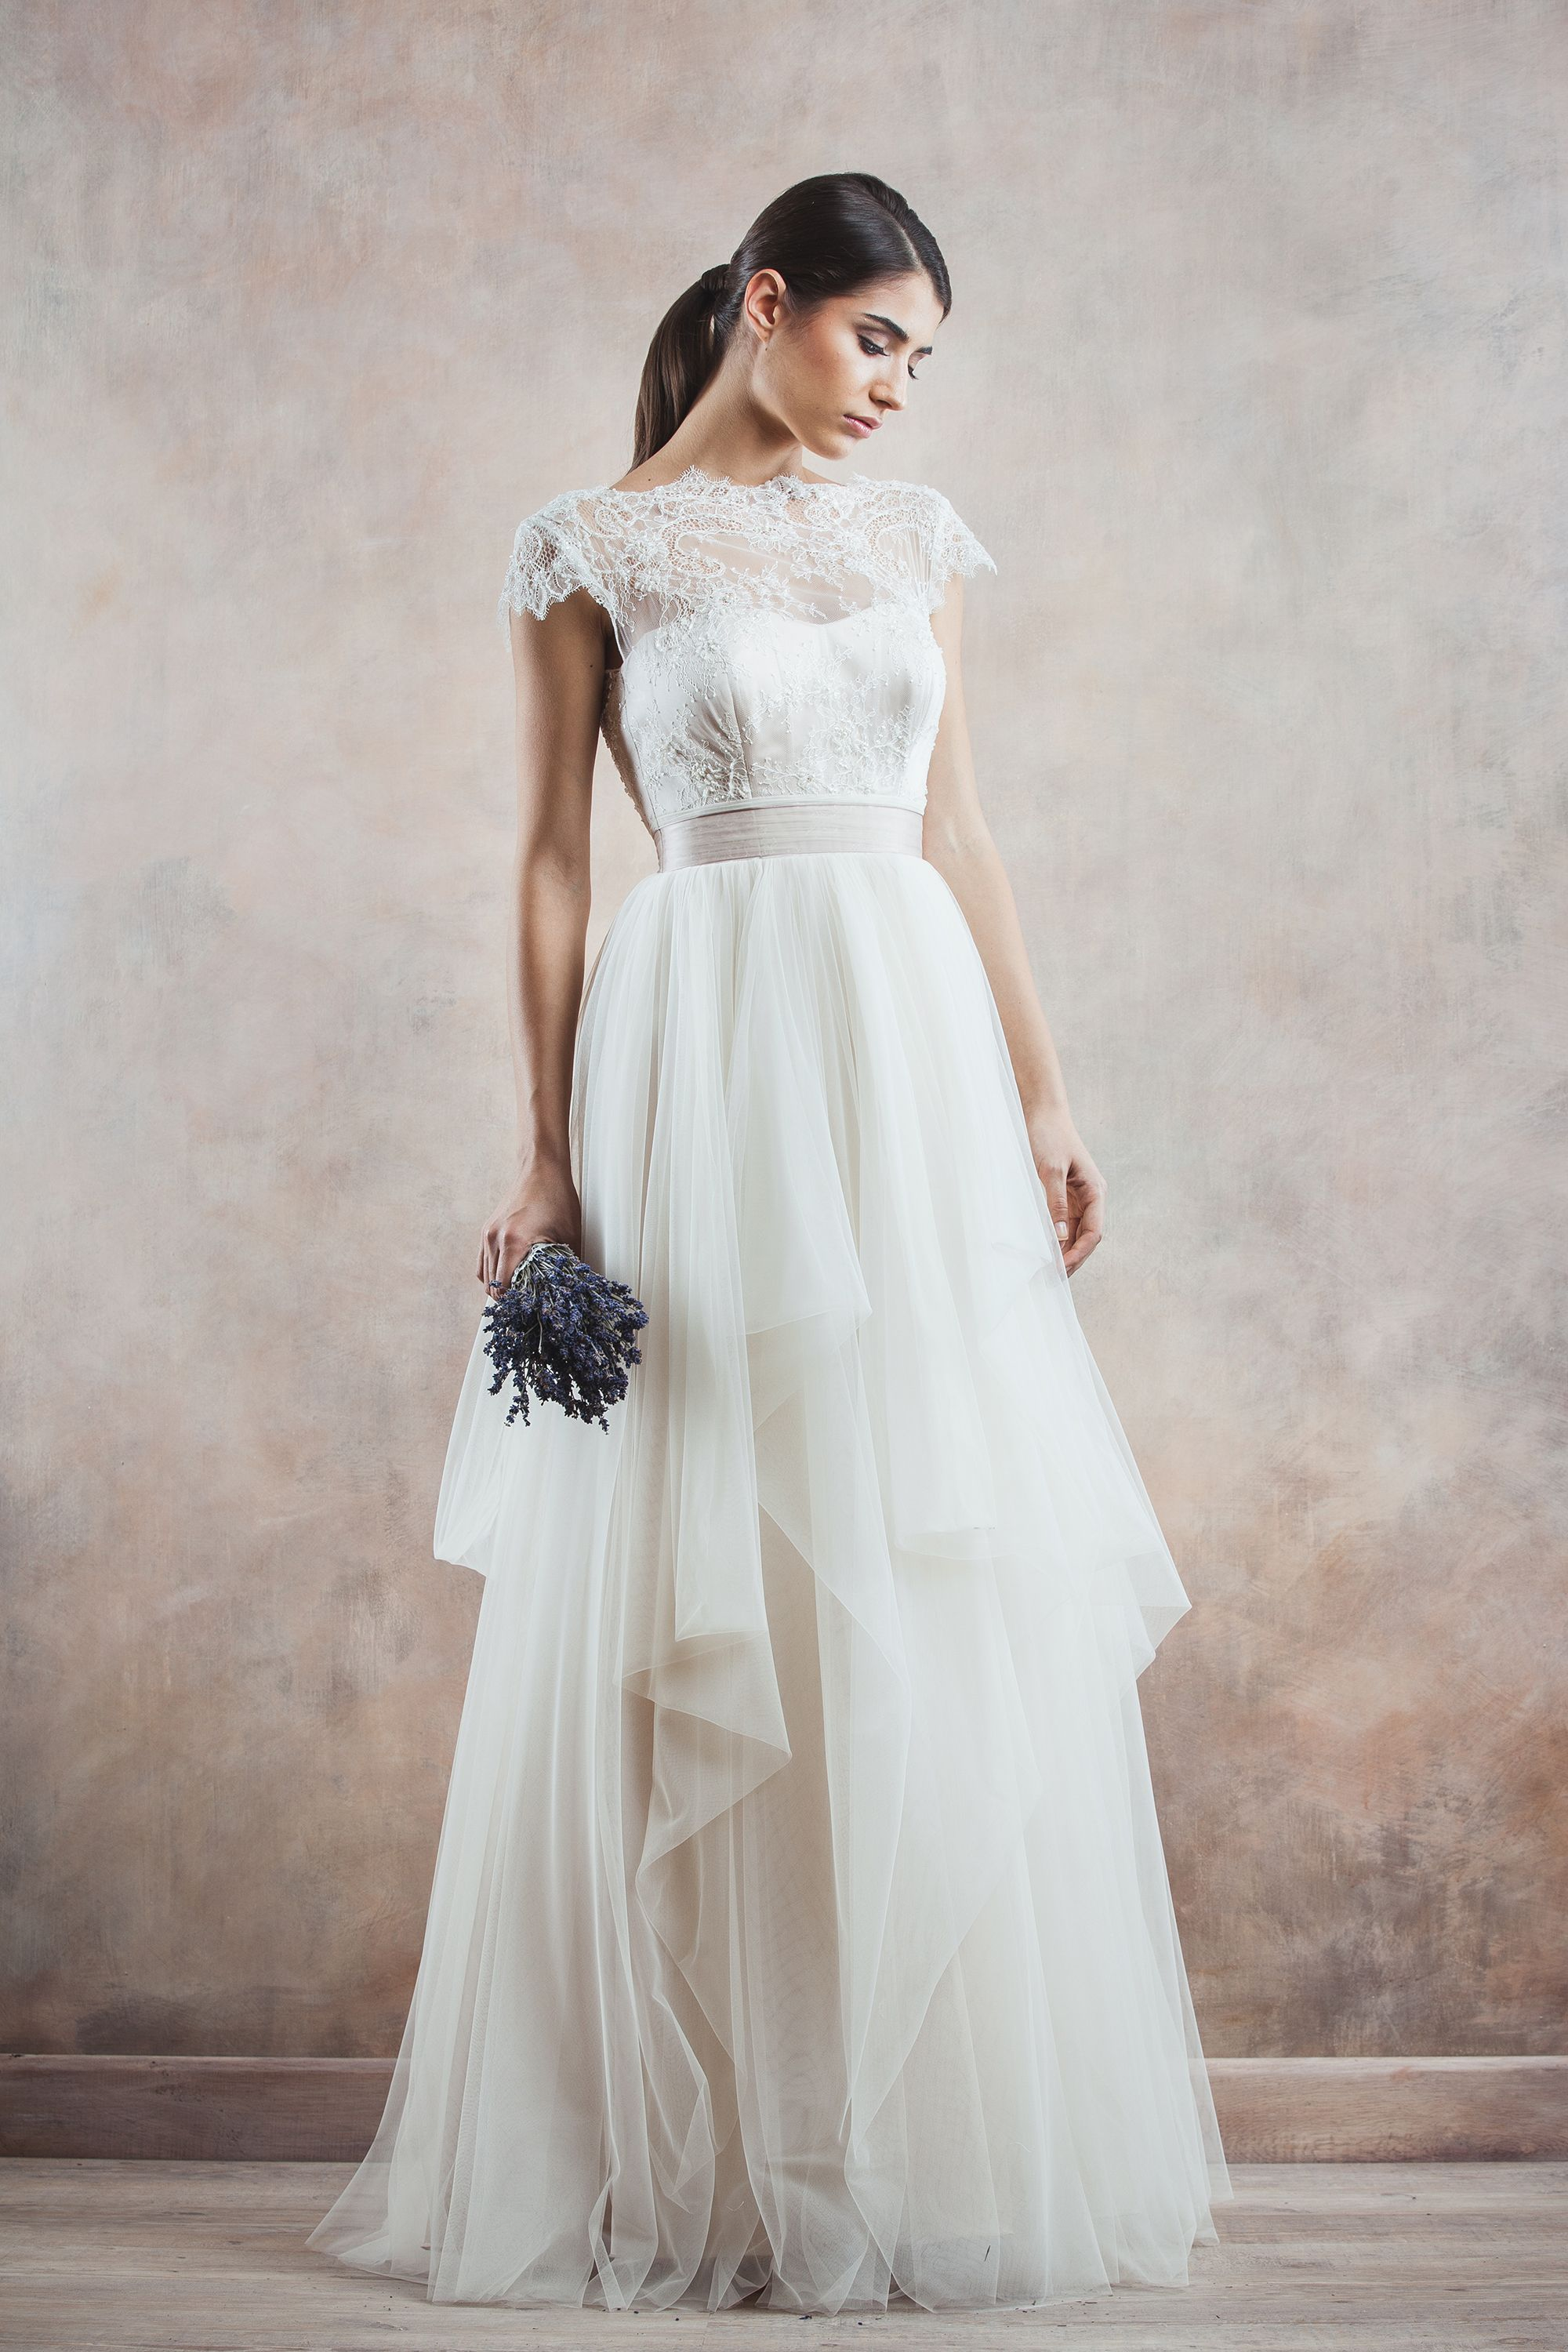 With a figure well-defined by a lavender cordon which delicately passes from the elaborate tulle skirts to the fine, precious lace corset, the Timeea wedding gown is both charming and mysterious at the same time.